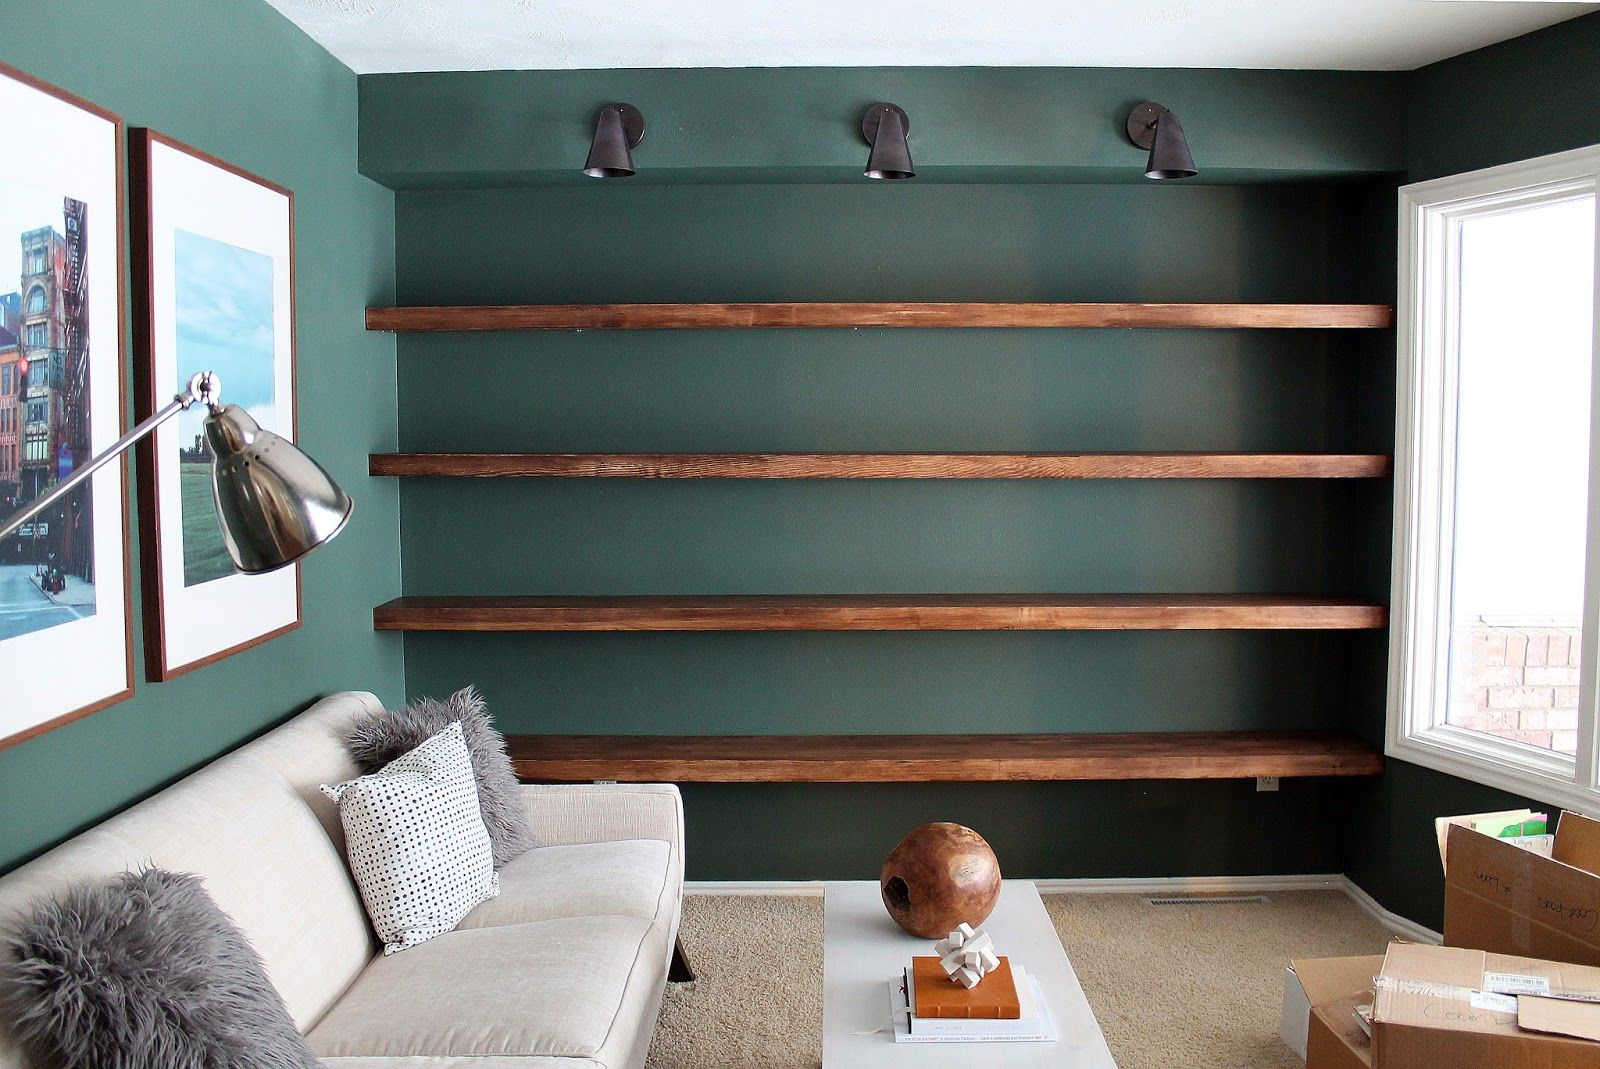 DIY Solid Wood WalltoWall Shelves